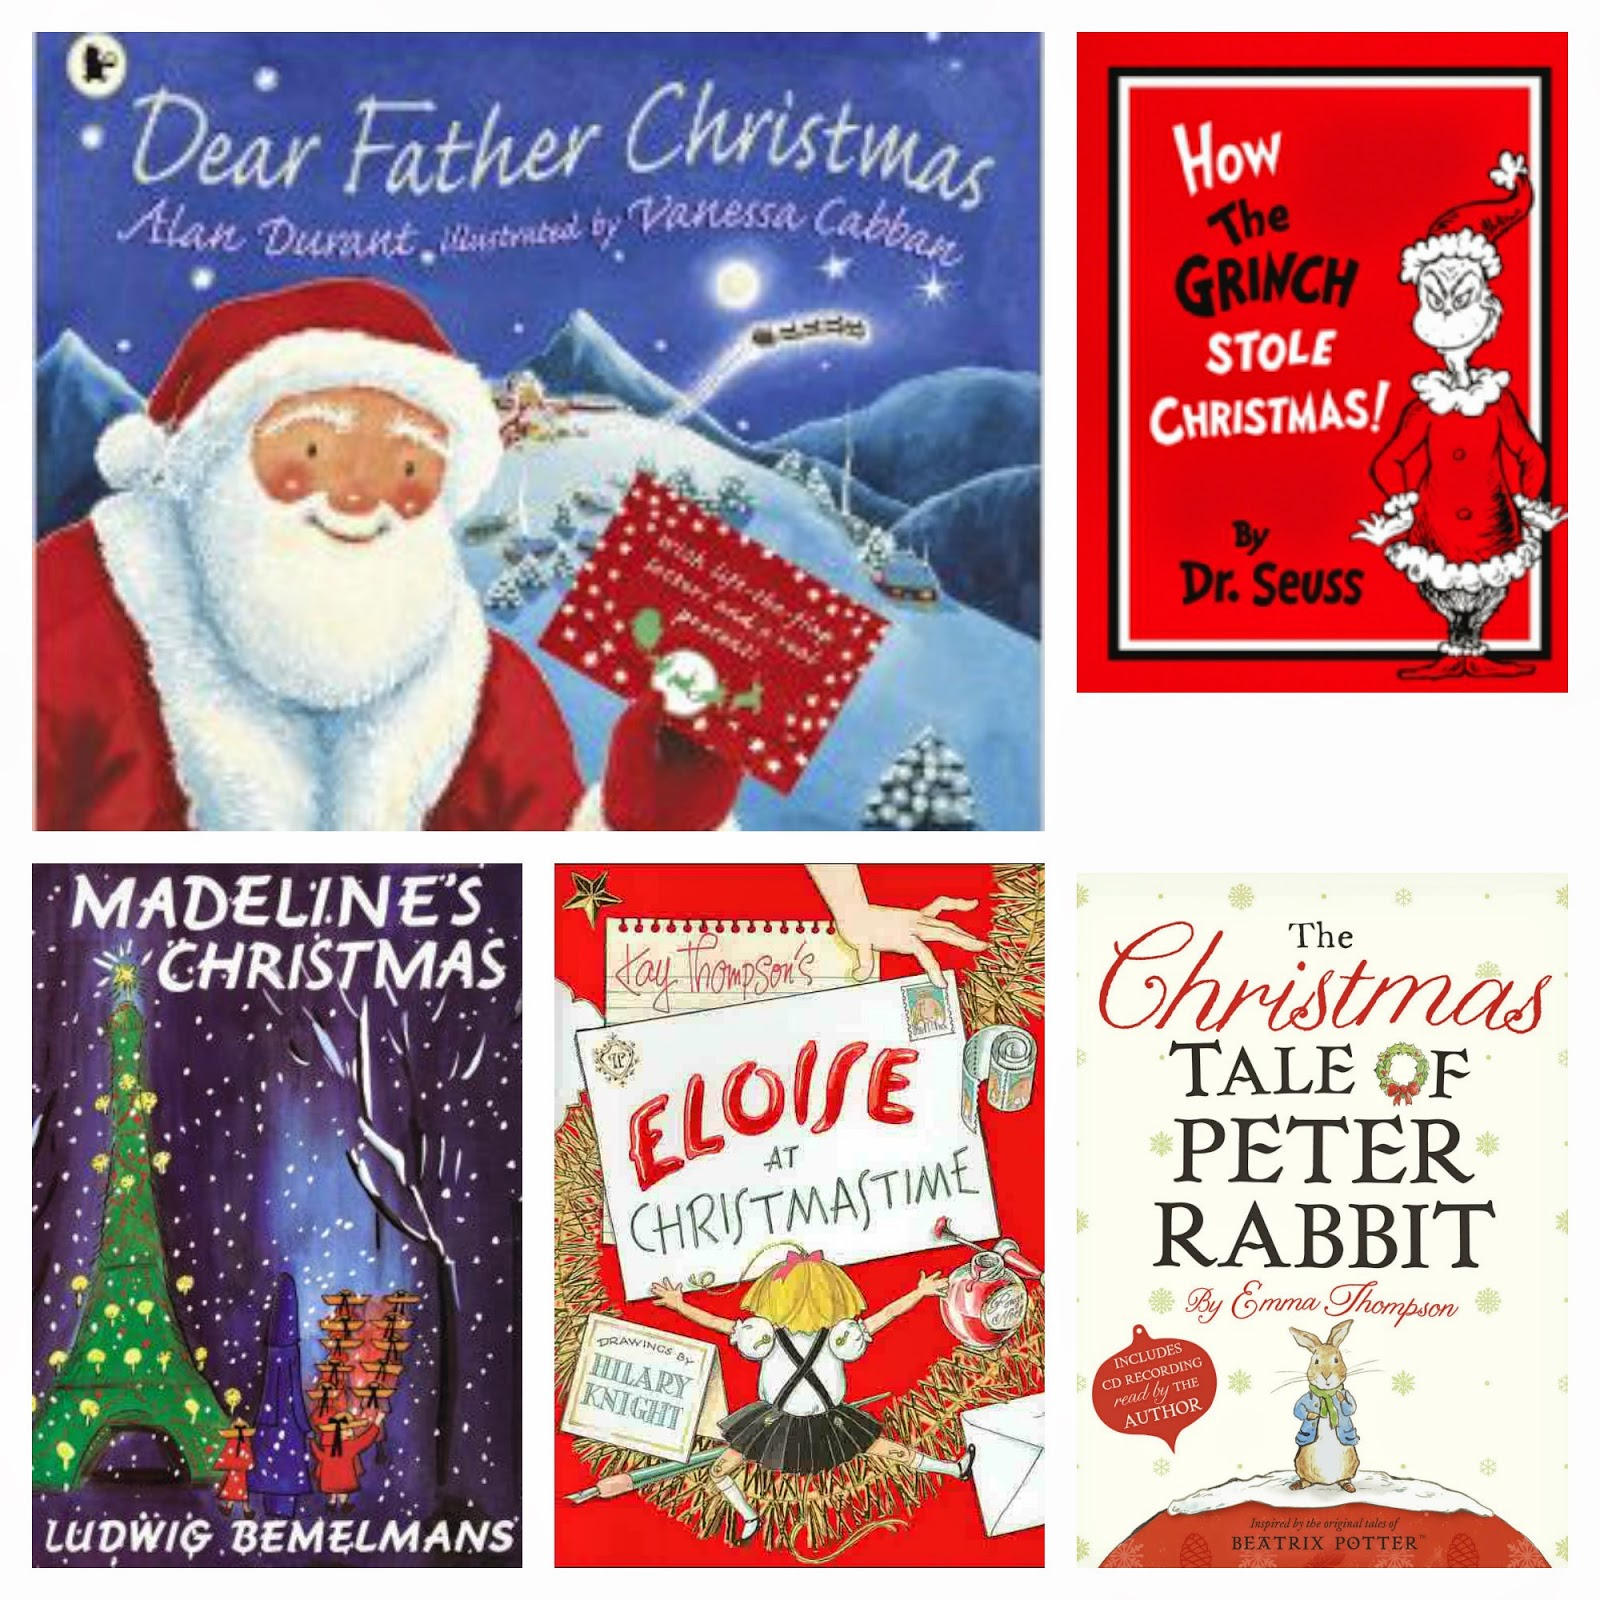 25 days of christmas books bookclub special book club special sunday night - Best Christmas Books